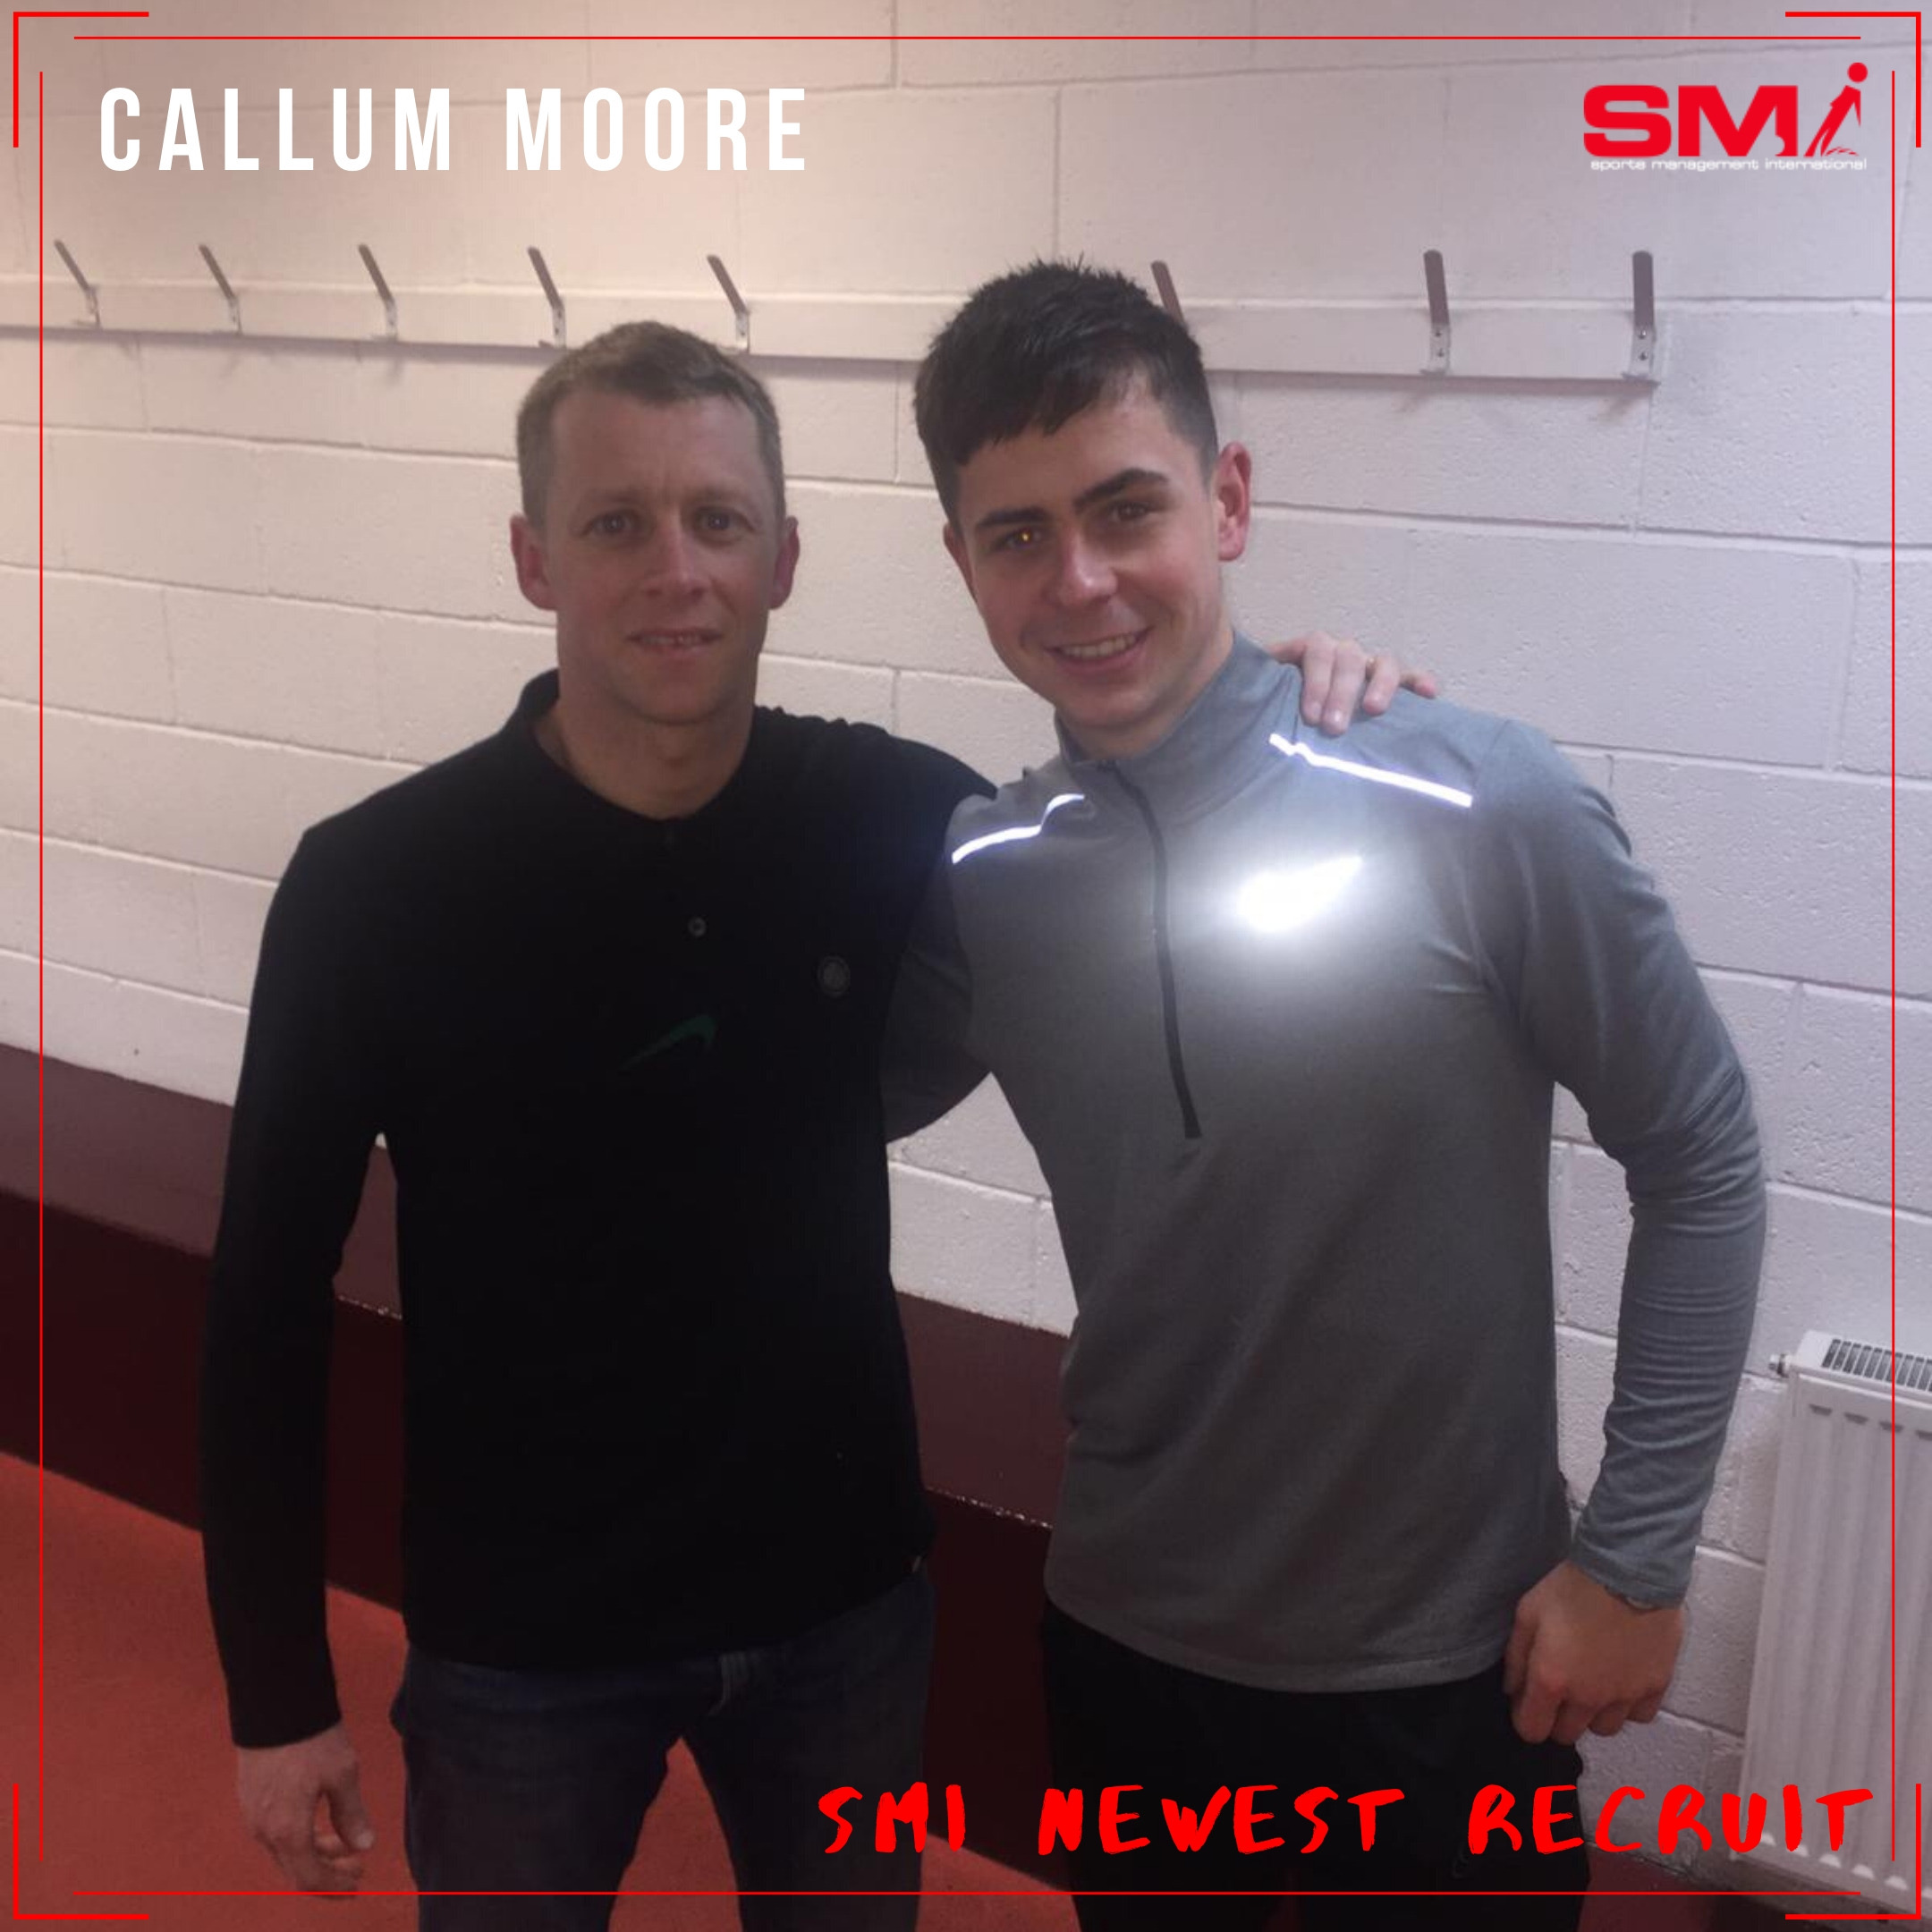 SMI newest recruit Callum Moore